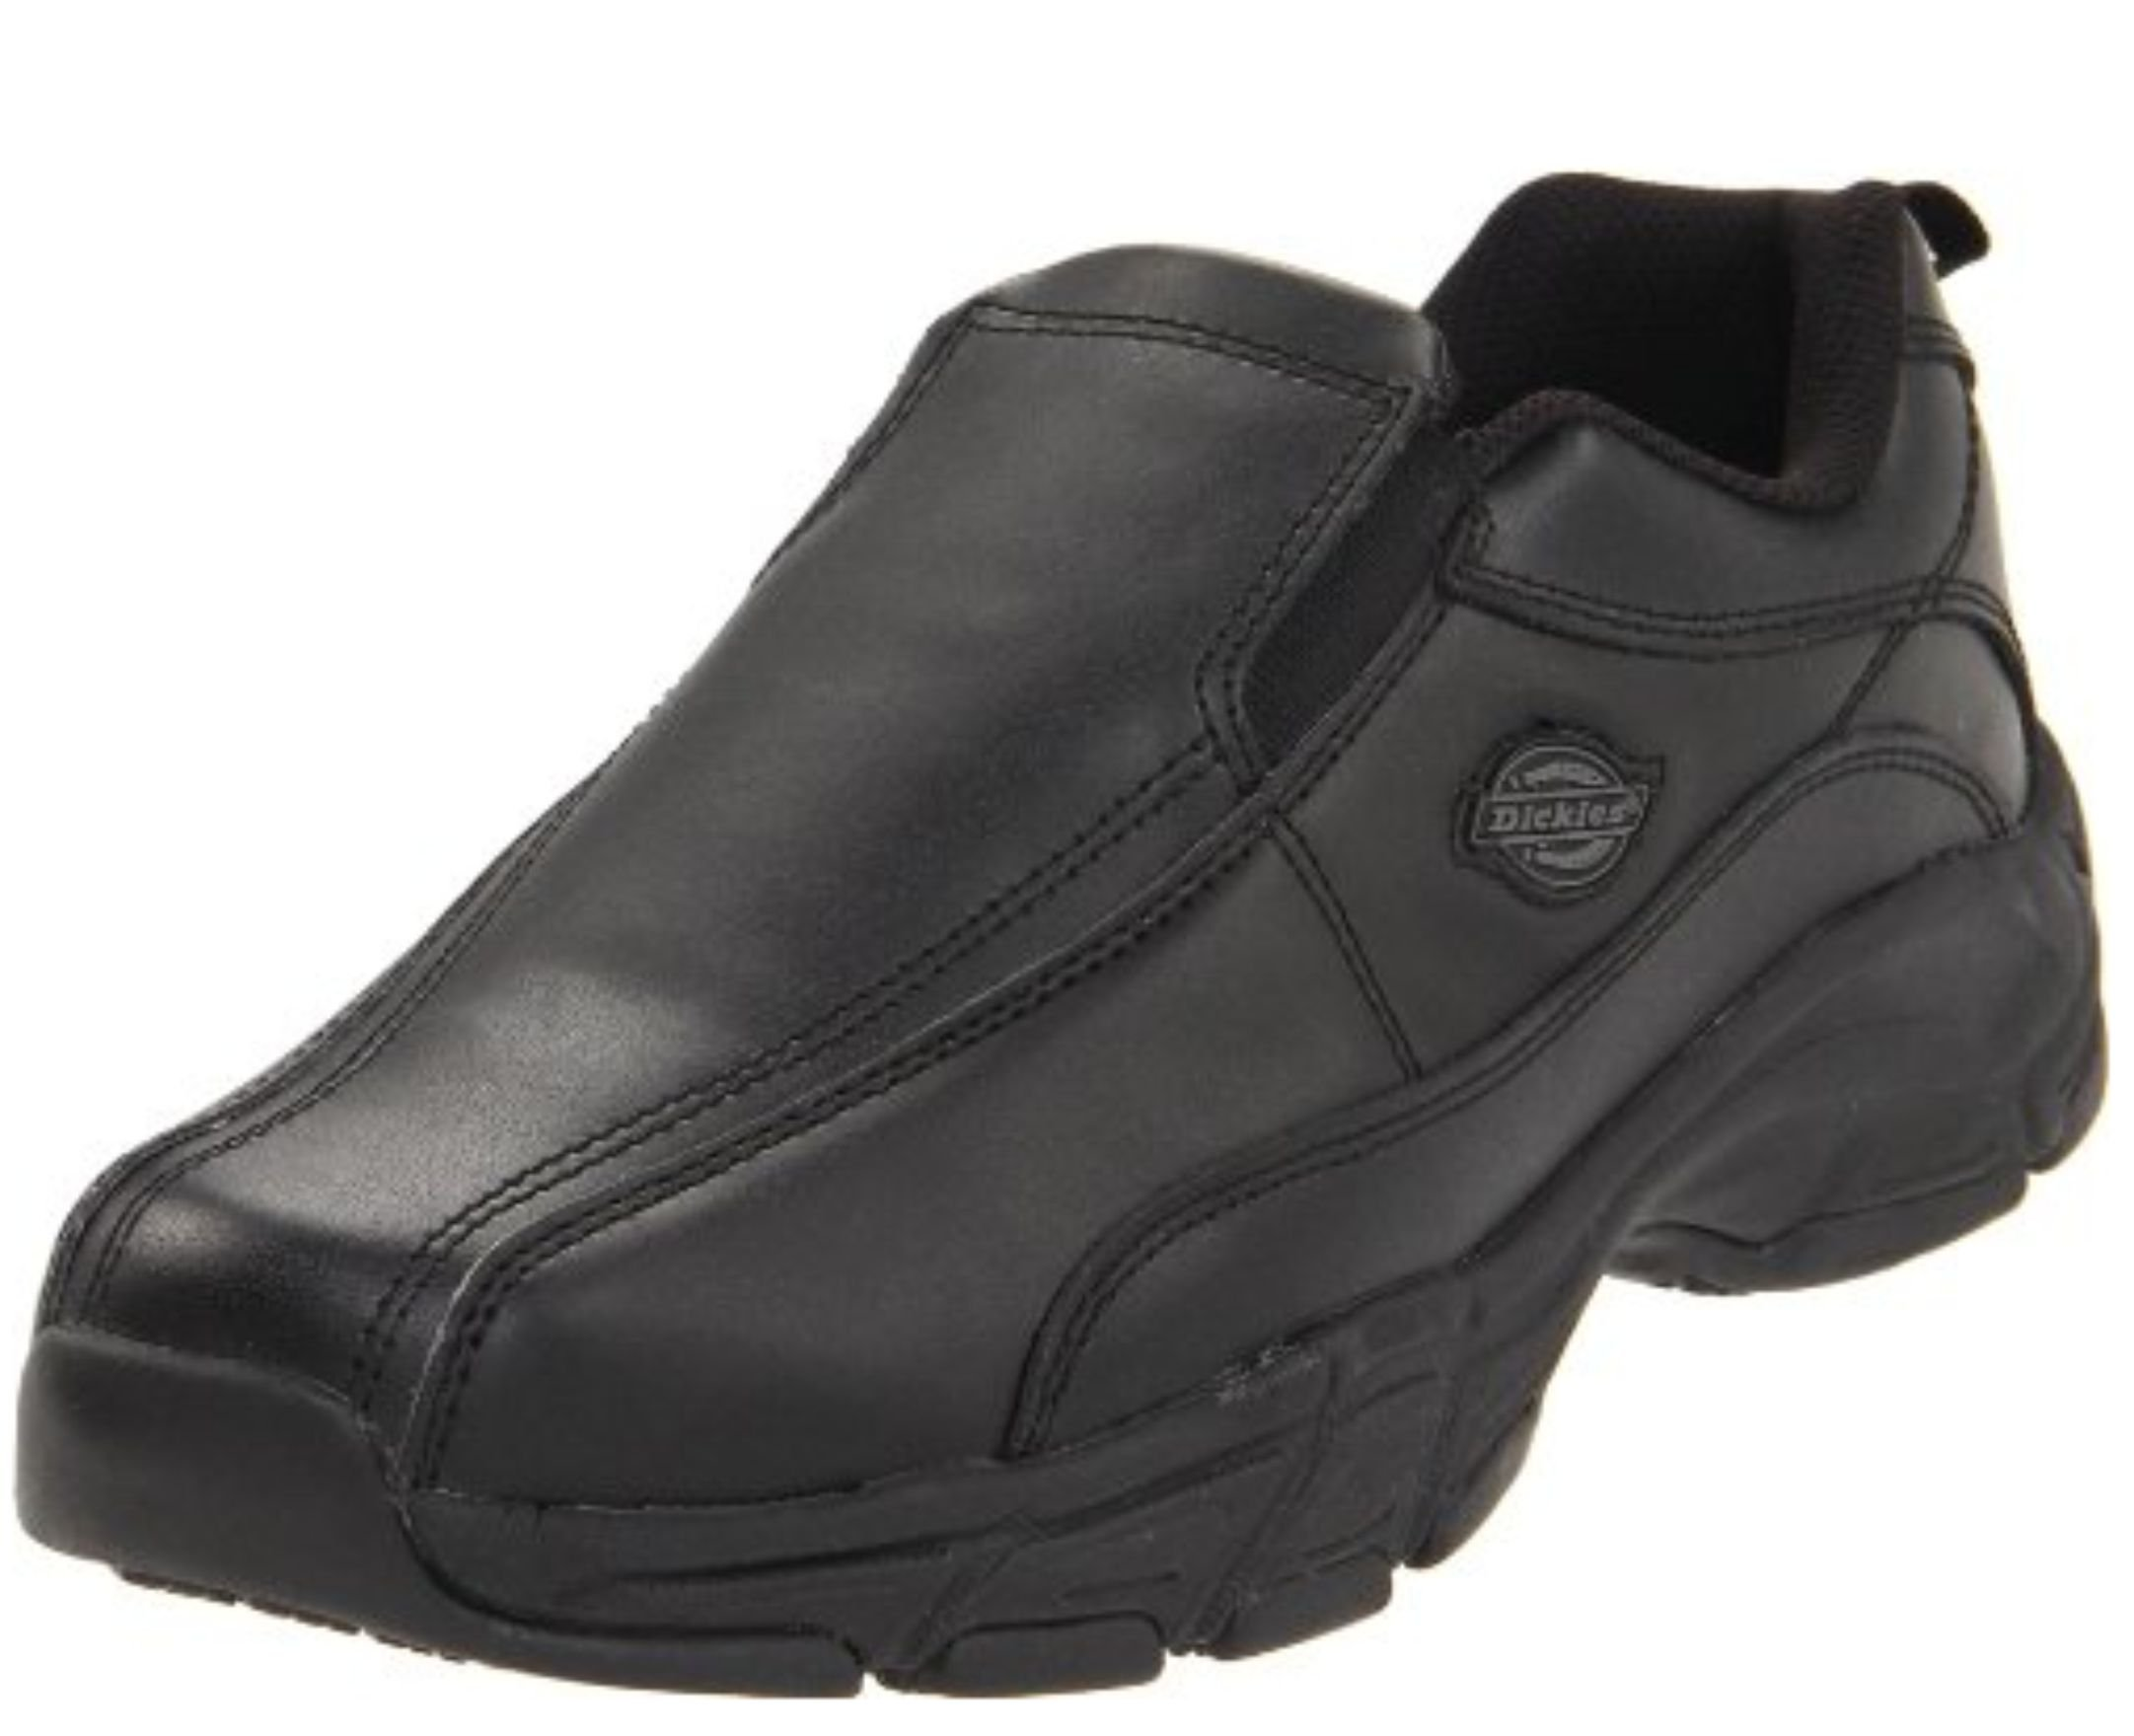 Dickies Men's Athletic Slip-On Work Shoe,Black,10.5 M US by Dickies